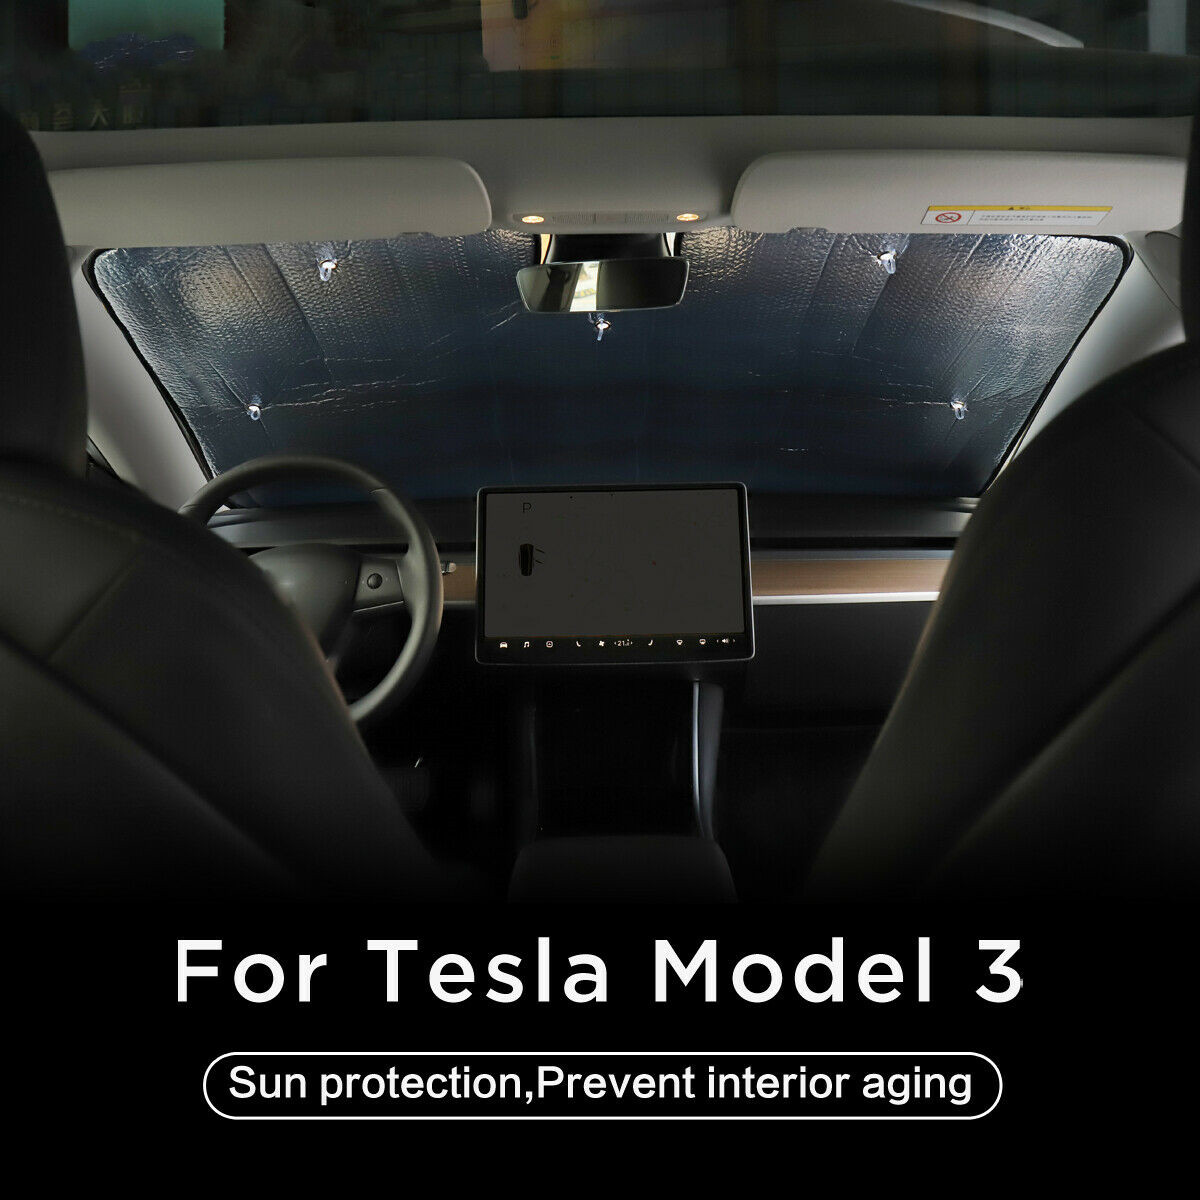 NEW Car Sunshade Sun Shade Windshield Visor Cover Front Rear Window Protection Shield Protection For Tesla Model 3